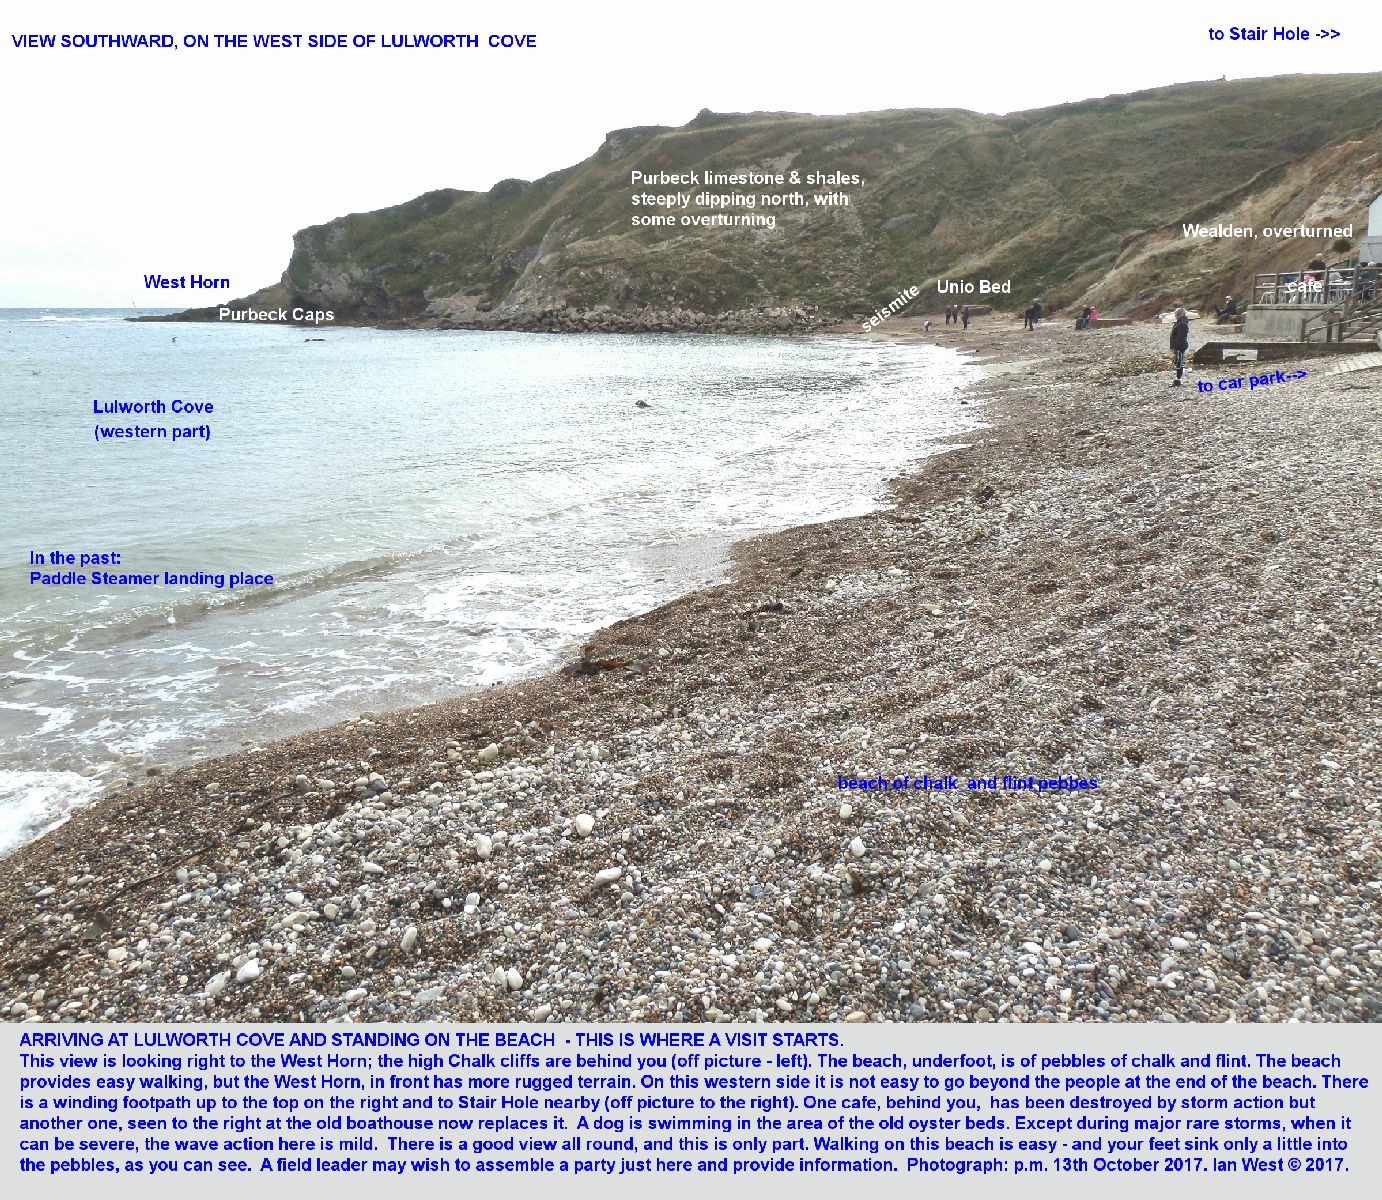 On the Lulworth Cove beach, near the access road and the cafe, looking at the western side of the cove and the West Horn, Dorset, 13th October 2017